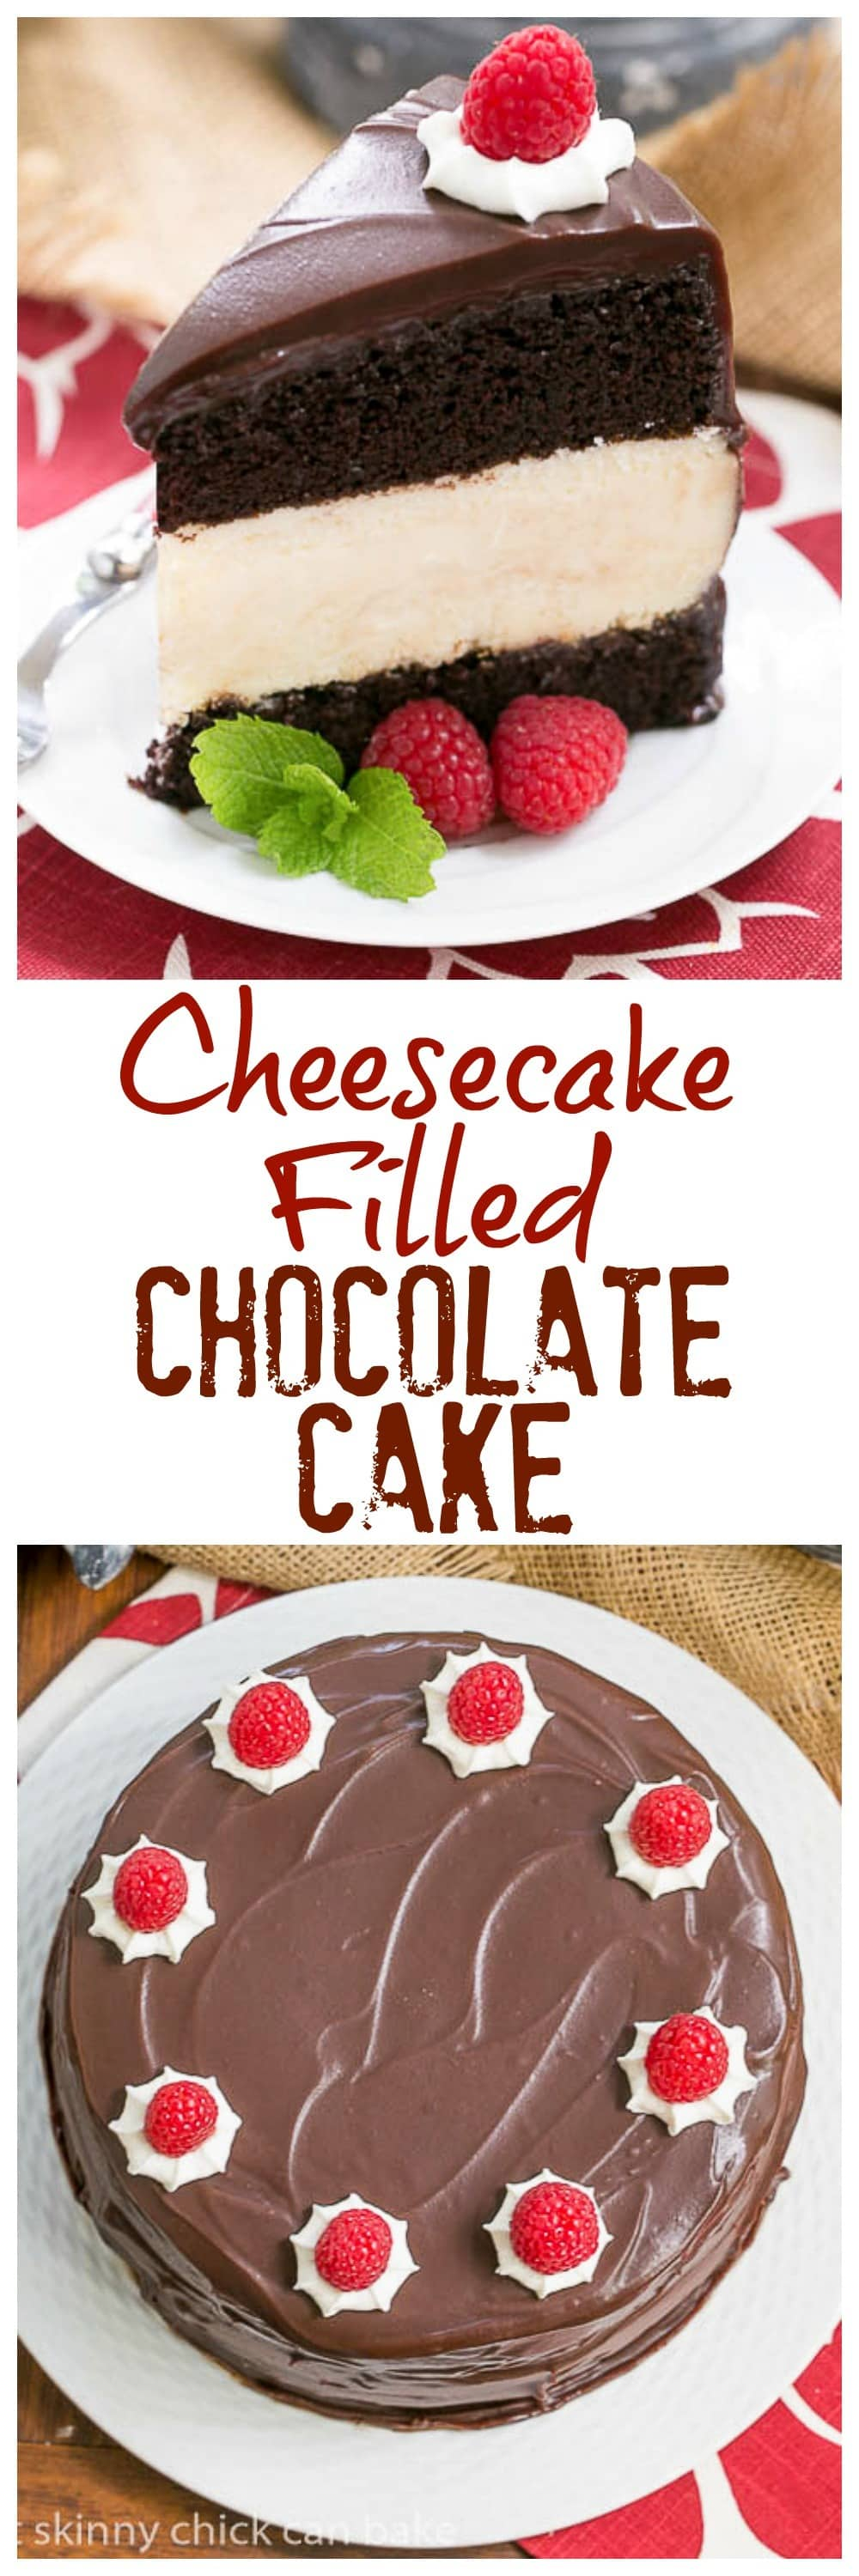 Moist buttermilk chocolate cake filled with a dreamy cheesecake and iced with fudge sauce #cake #chocolate #fudge #cheesecake